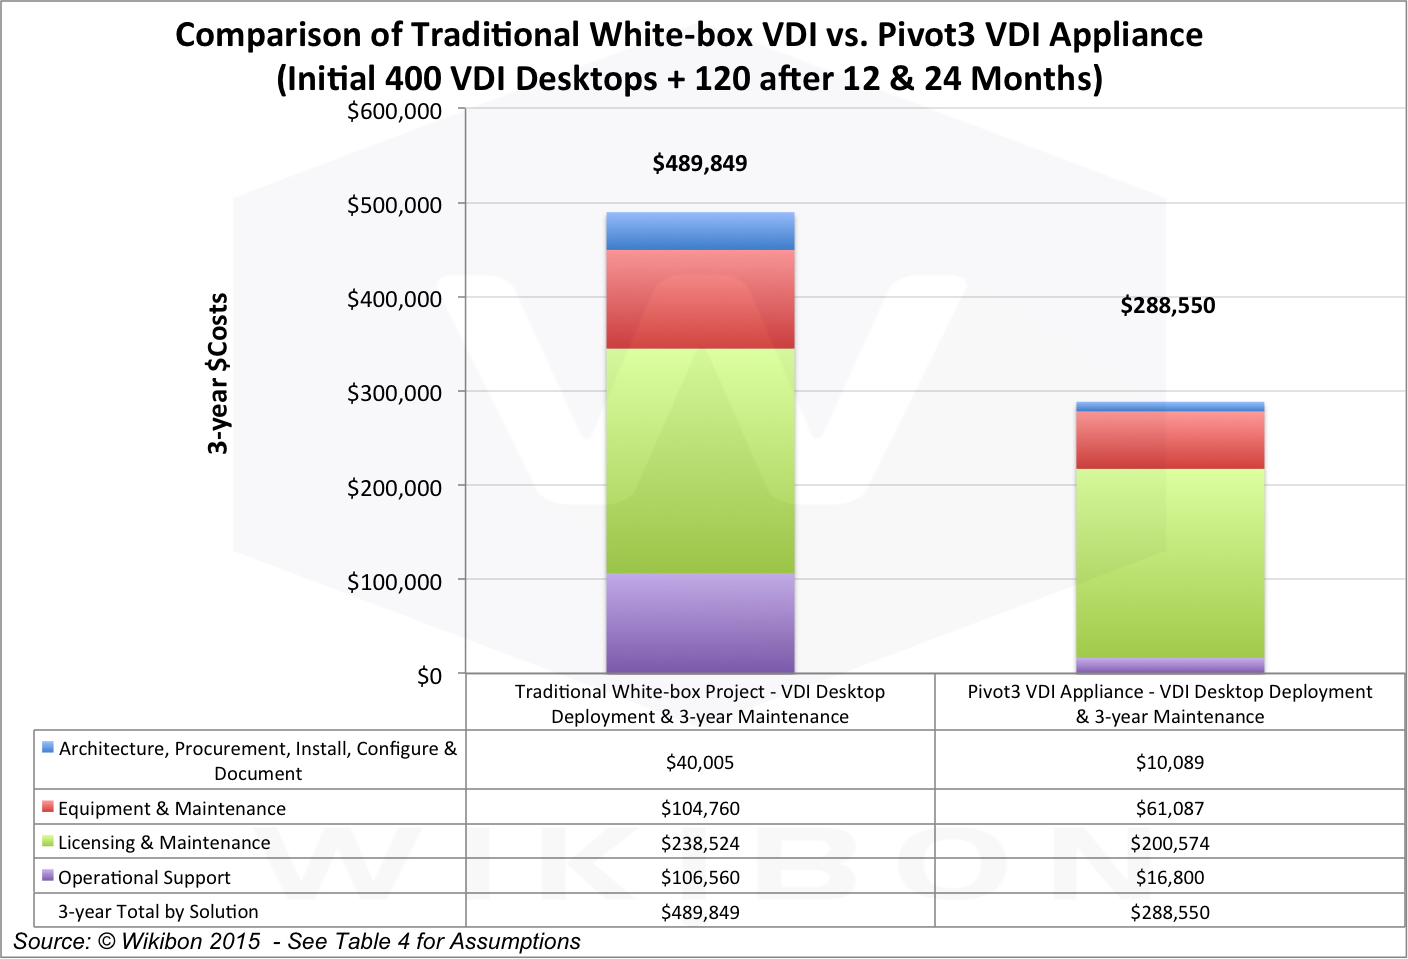 Figure 5: Breakout of Cost Comparison of Traditional White Box VDI with Pivot3 VDI Appliance (640 VDI Desktops)Source: © Wikibon 2015, based on the assumptions and calculations in Table 4 in the Footnotes, itself derived from Tables 5 & 6 in the Footnotes below.